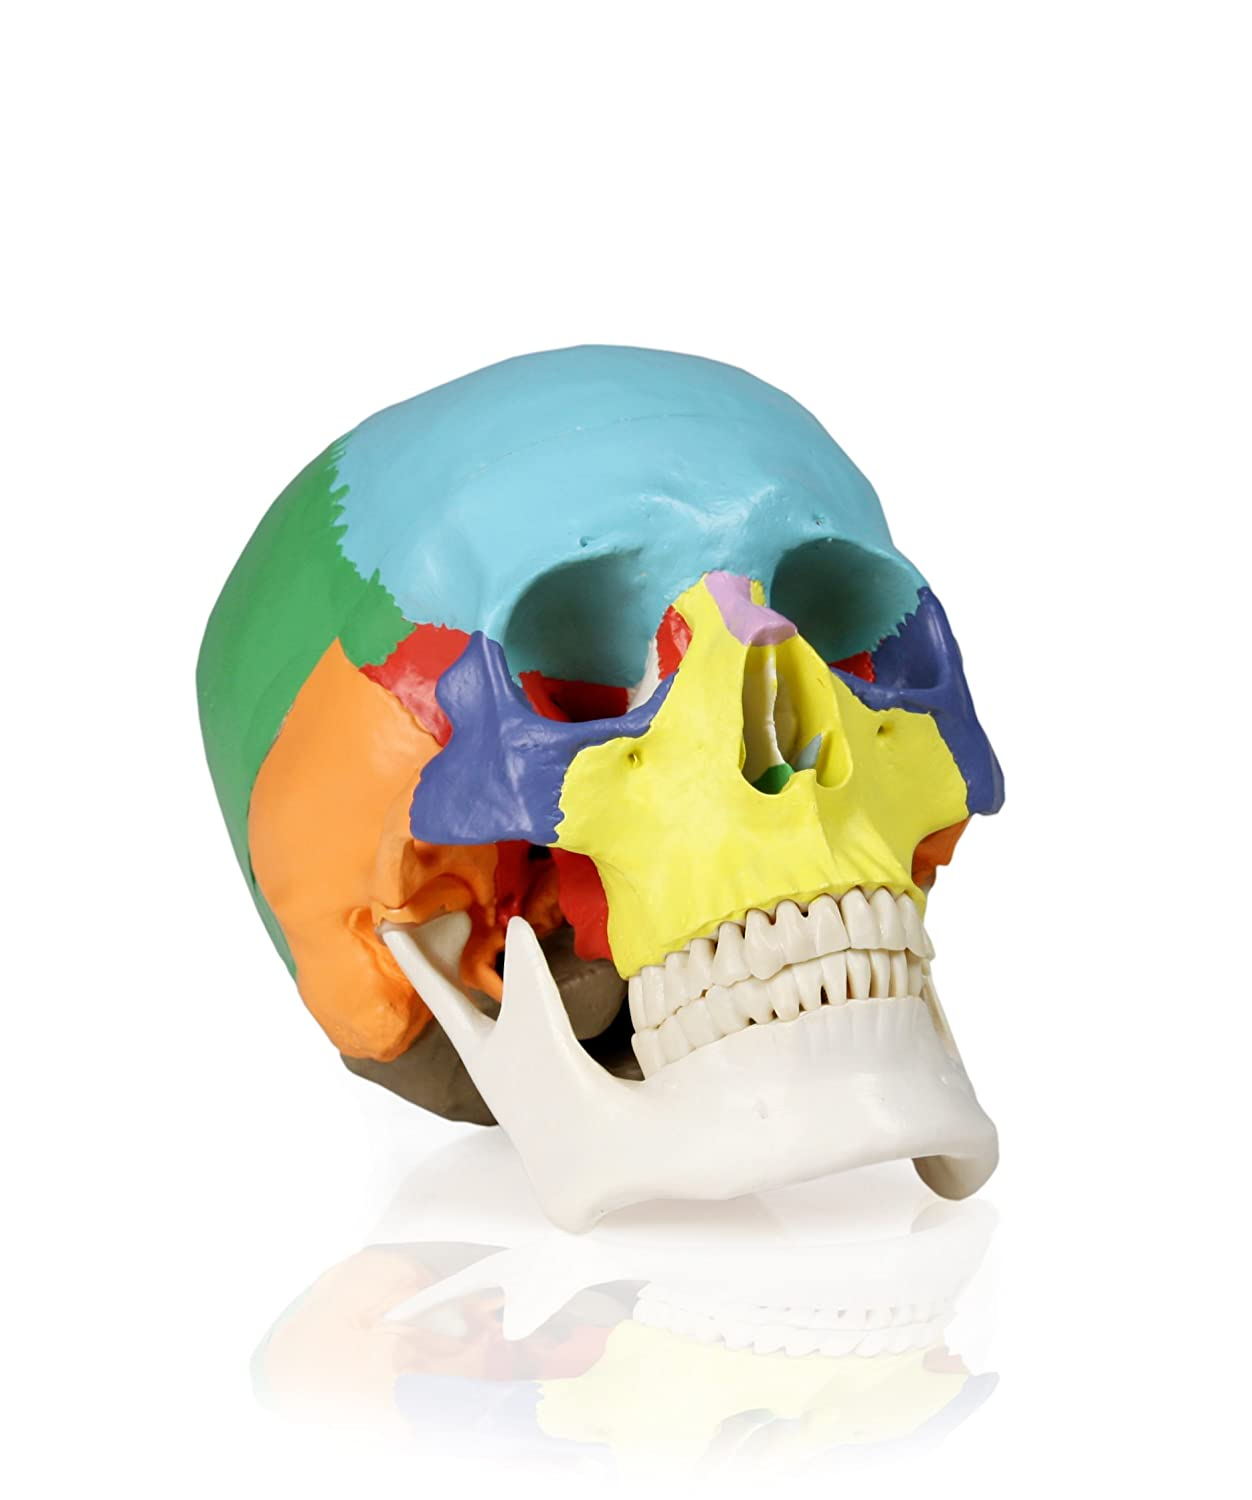 Walter Products B10218 22 Colored Human Skull Model, Life Size